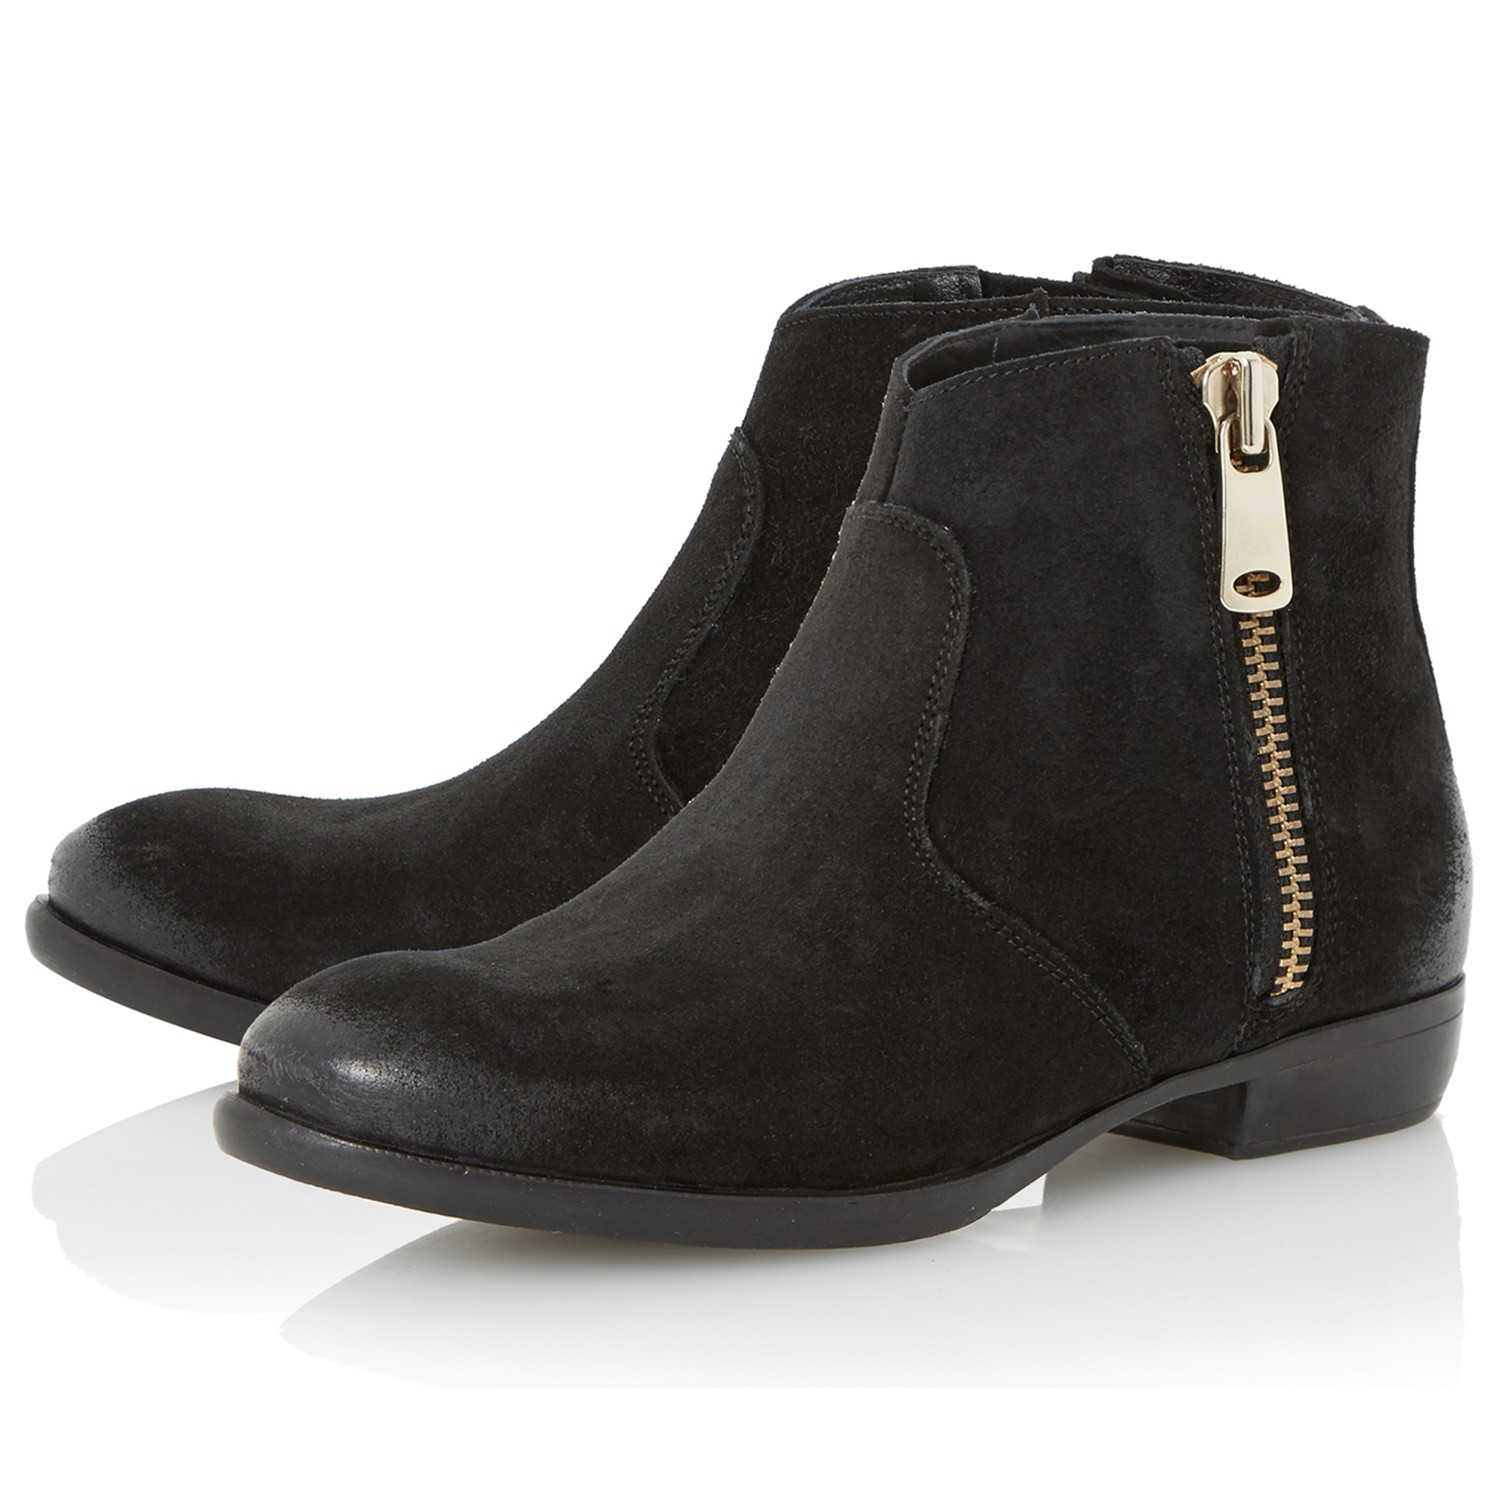 Dune Popple Suede Ankle Boots in Black